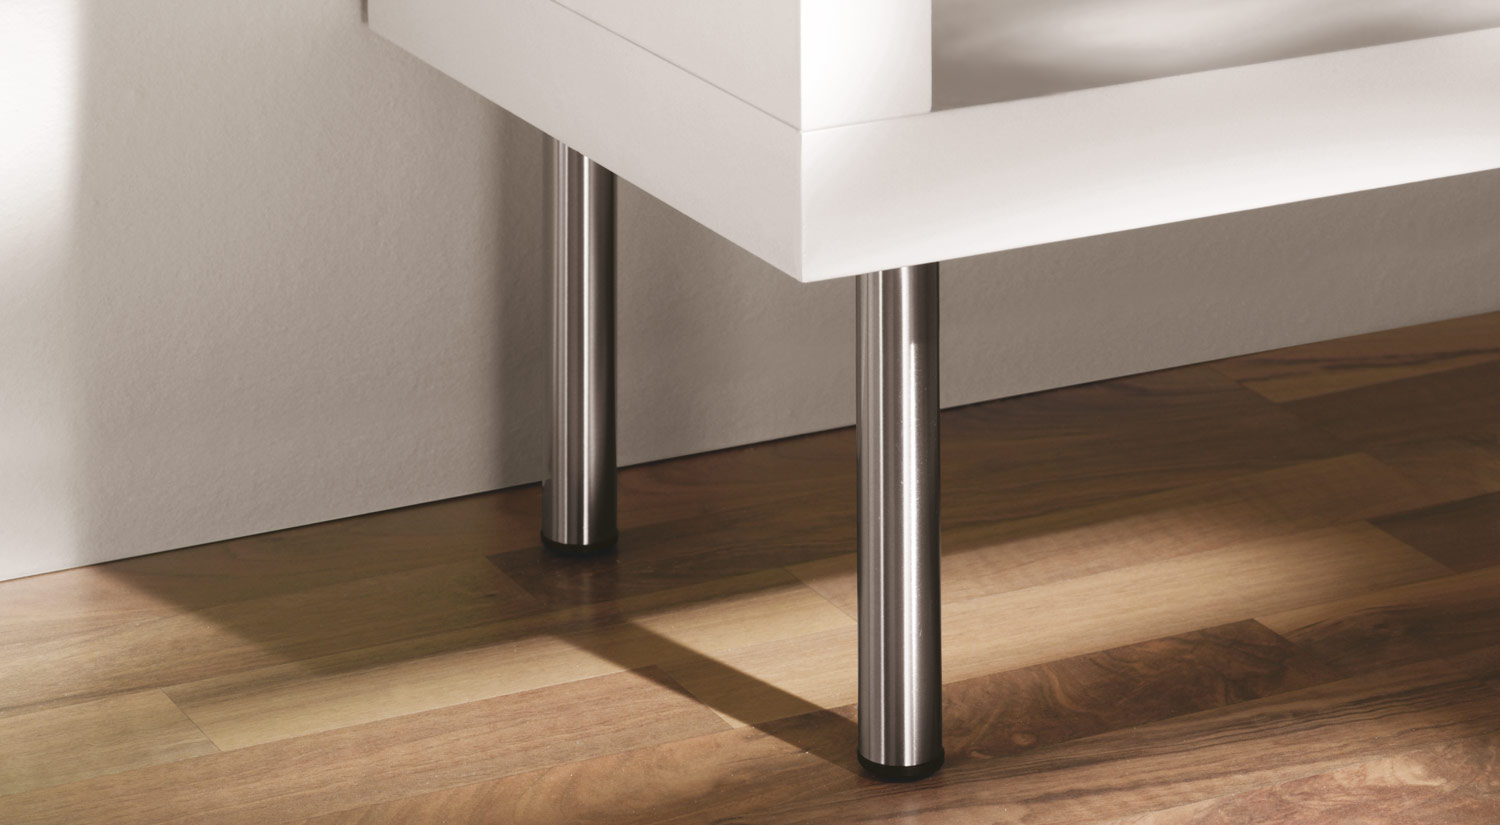 Table legs - POP metal furniture feet